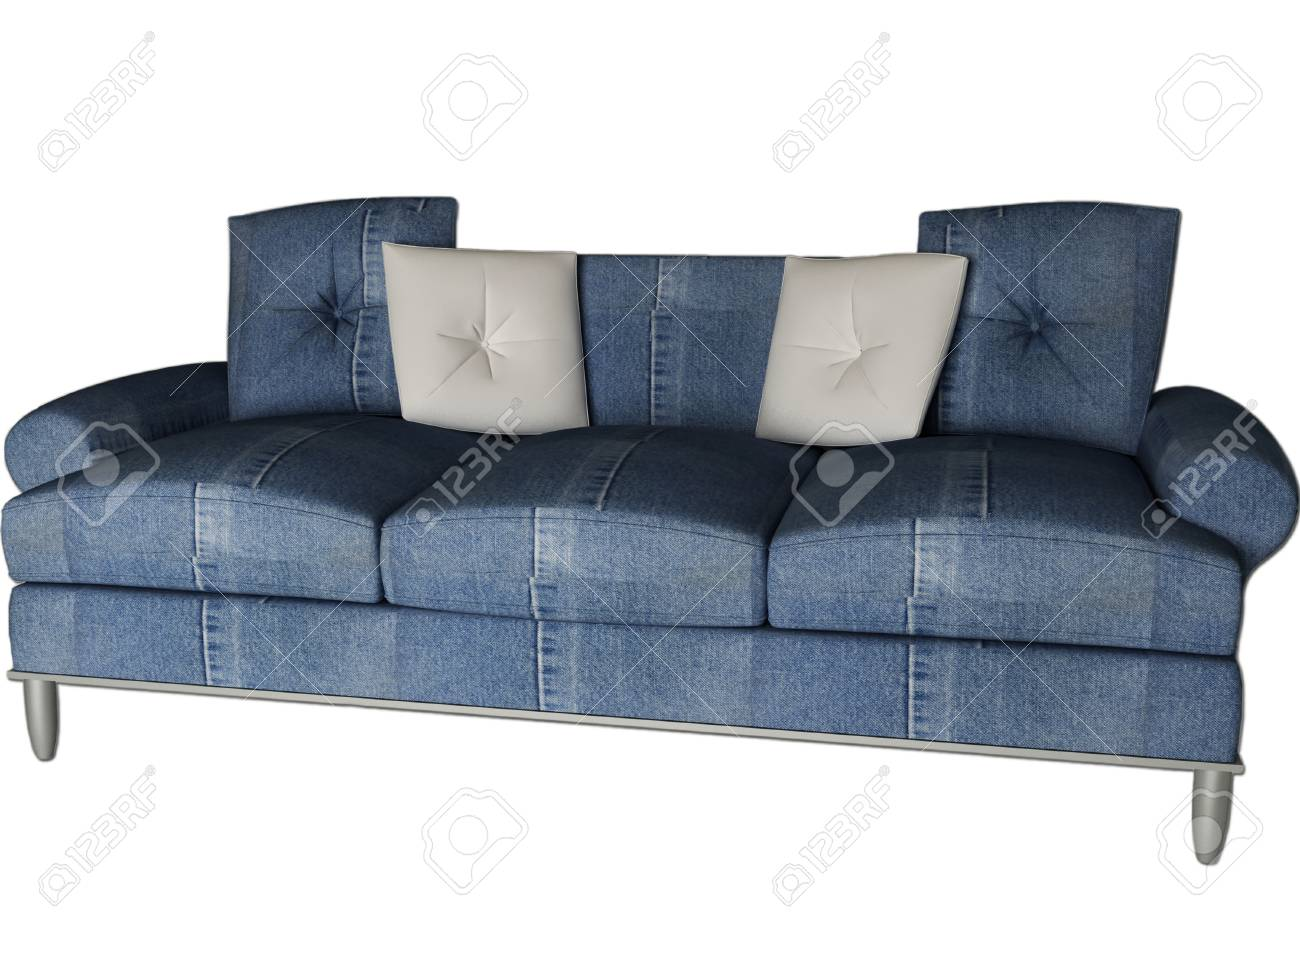 Picture of: Modern Jean Sofa Isolated On White Background Stock Photo Picture And Royalty Free Image Image 12879648